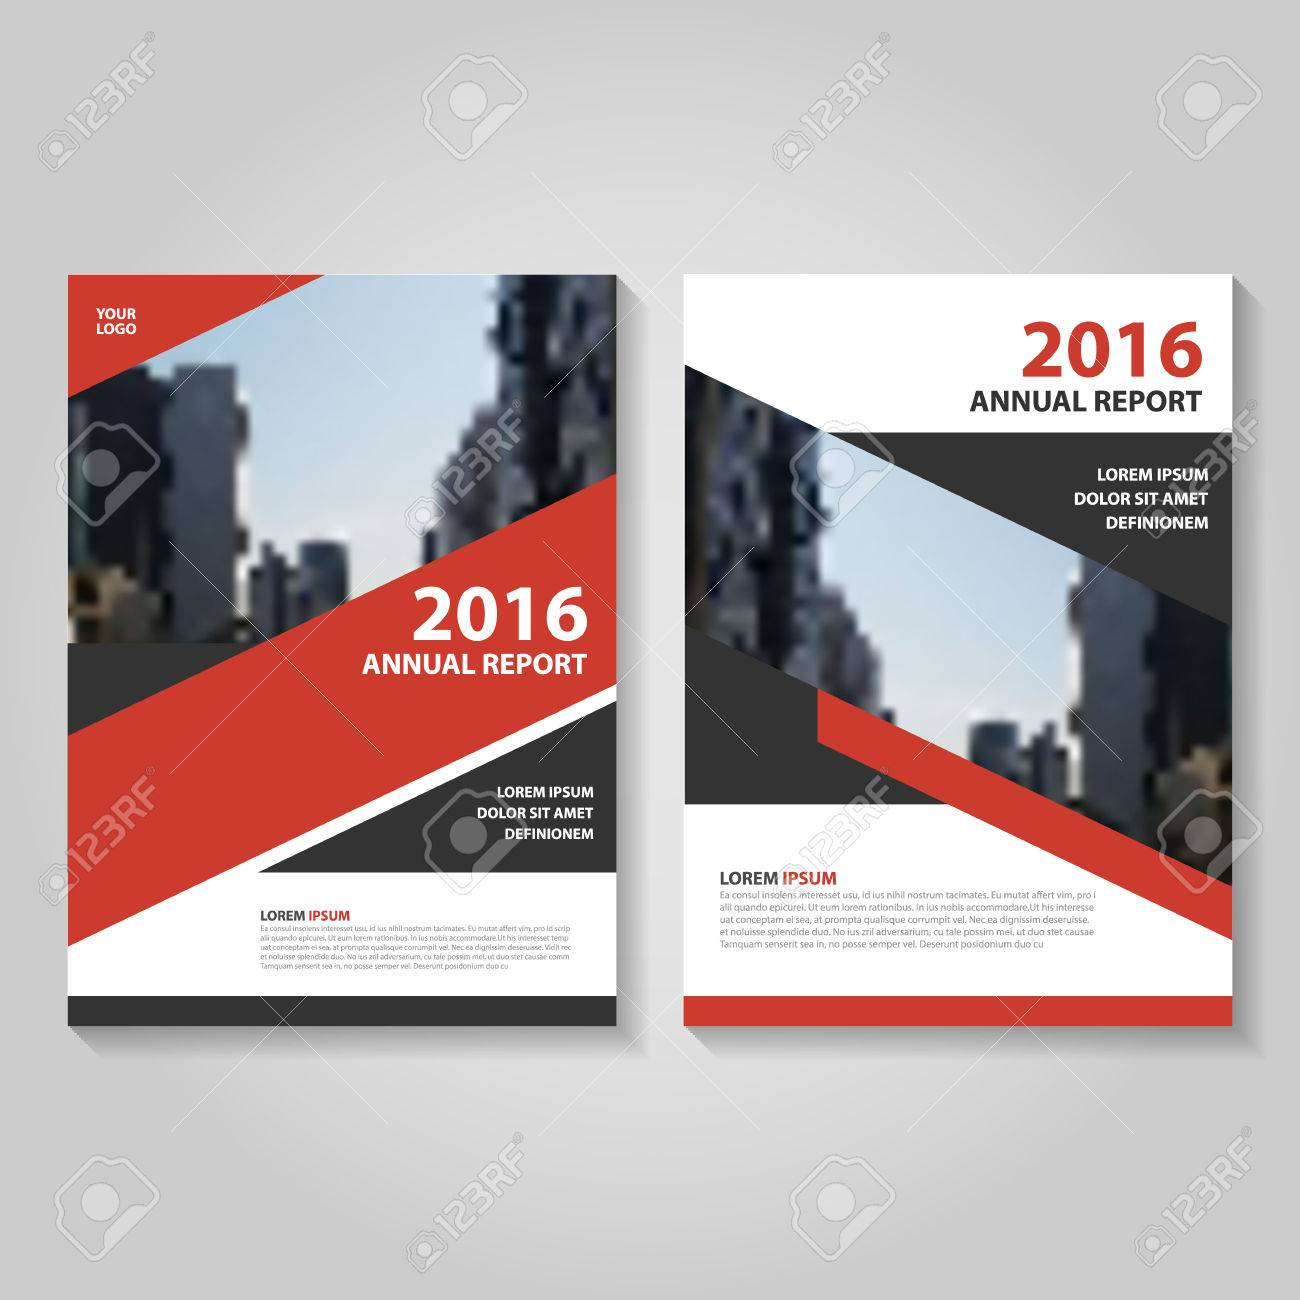 Abstract Red Black Annual Report Leaflet Brochure Template Design ...